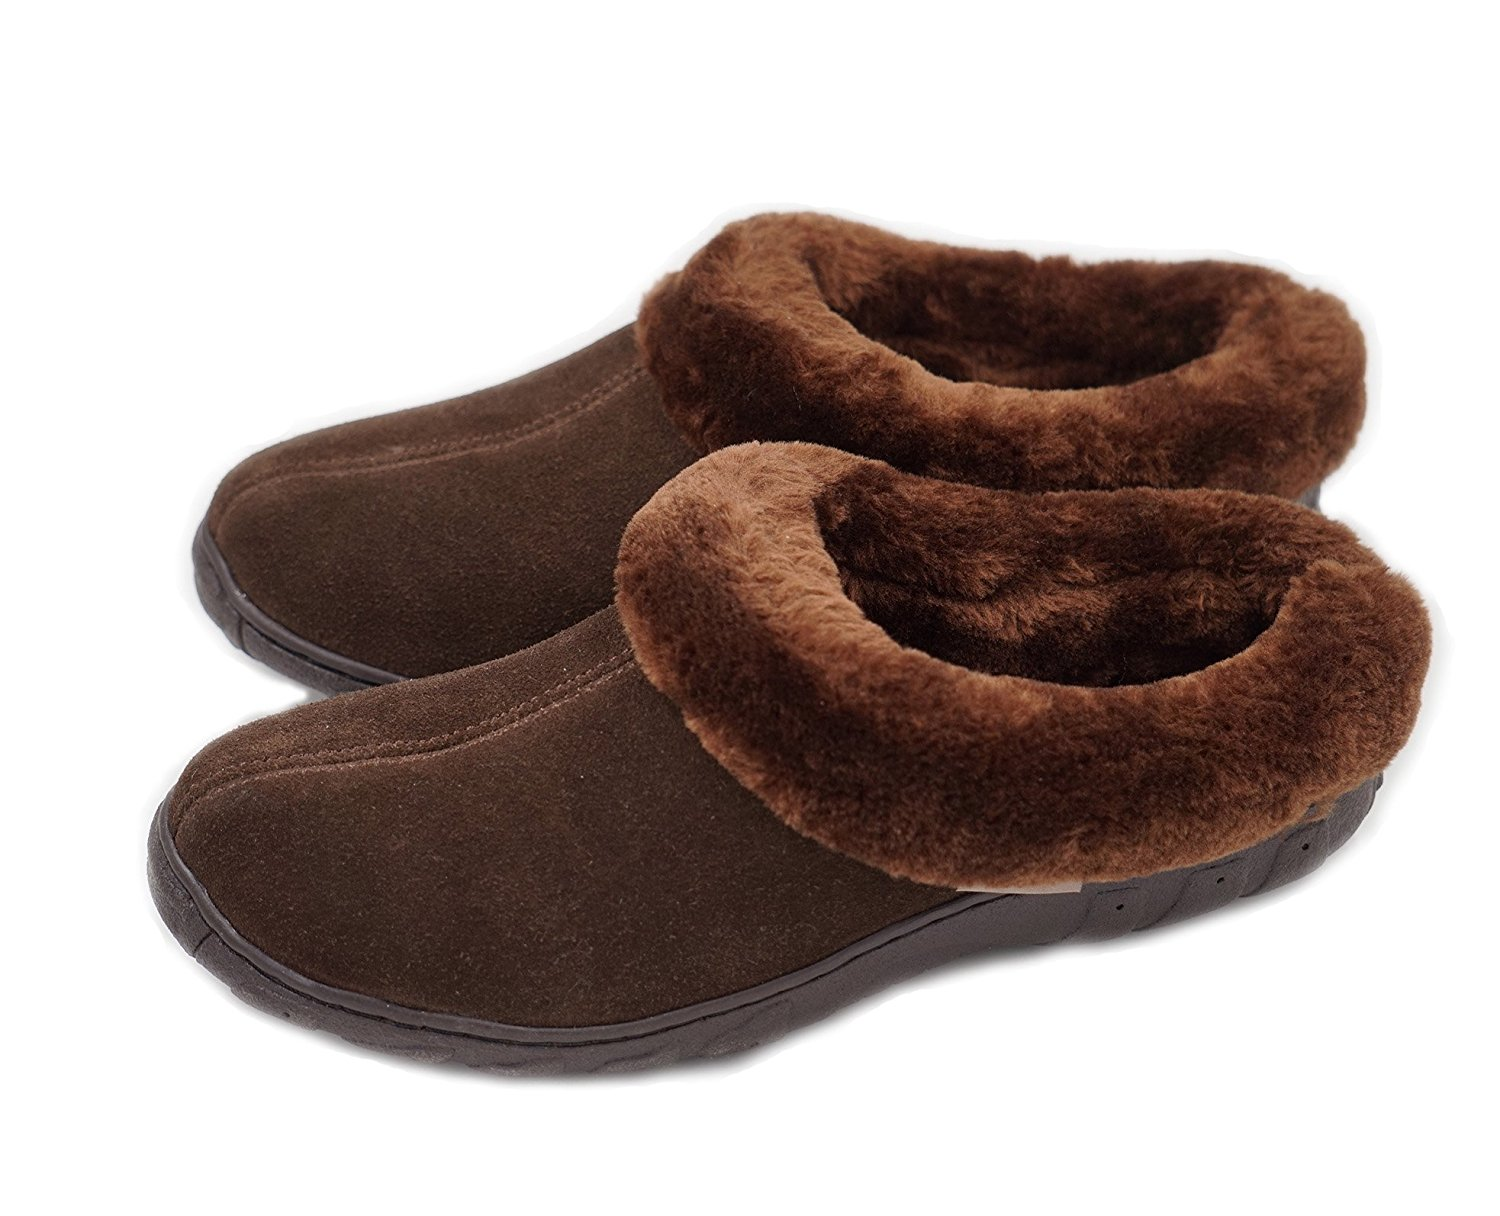 Oyangs Slippers For Women,Womens Slippers,Leather Slippers,Sheepskin Slippers, Slippers Women,Slippers,Indoor Slippers,Ladies Slippers,Fluffy Slippers Fur Fuzzy House Cozy Slippers S106